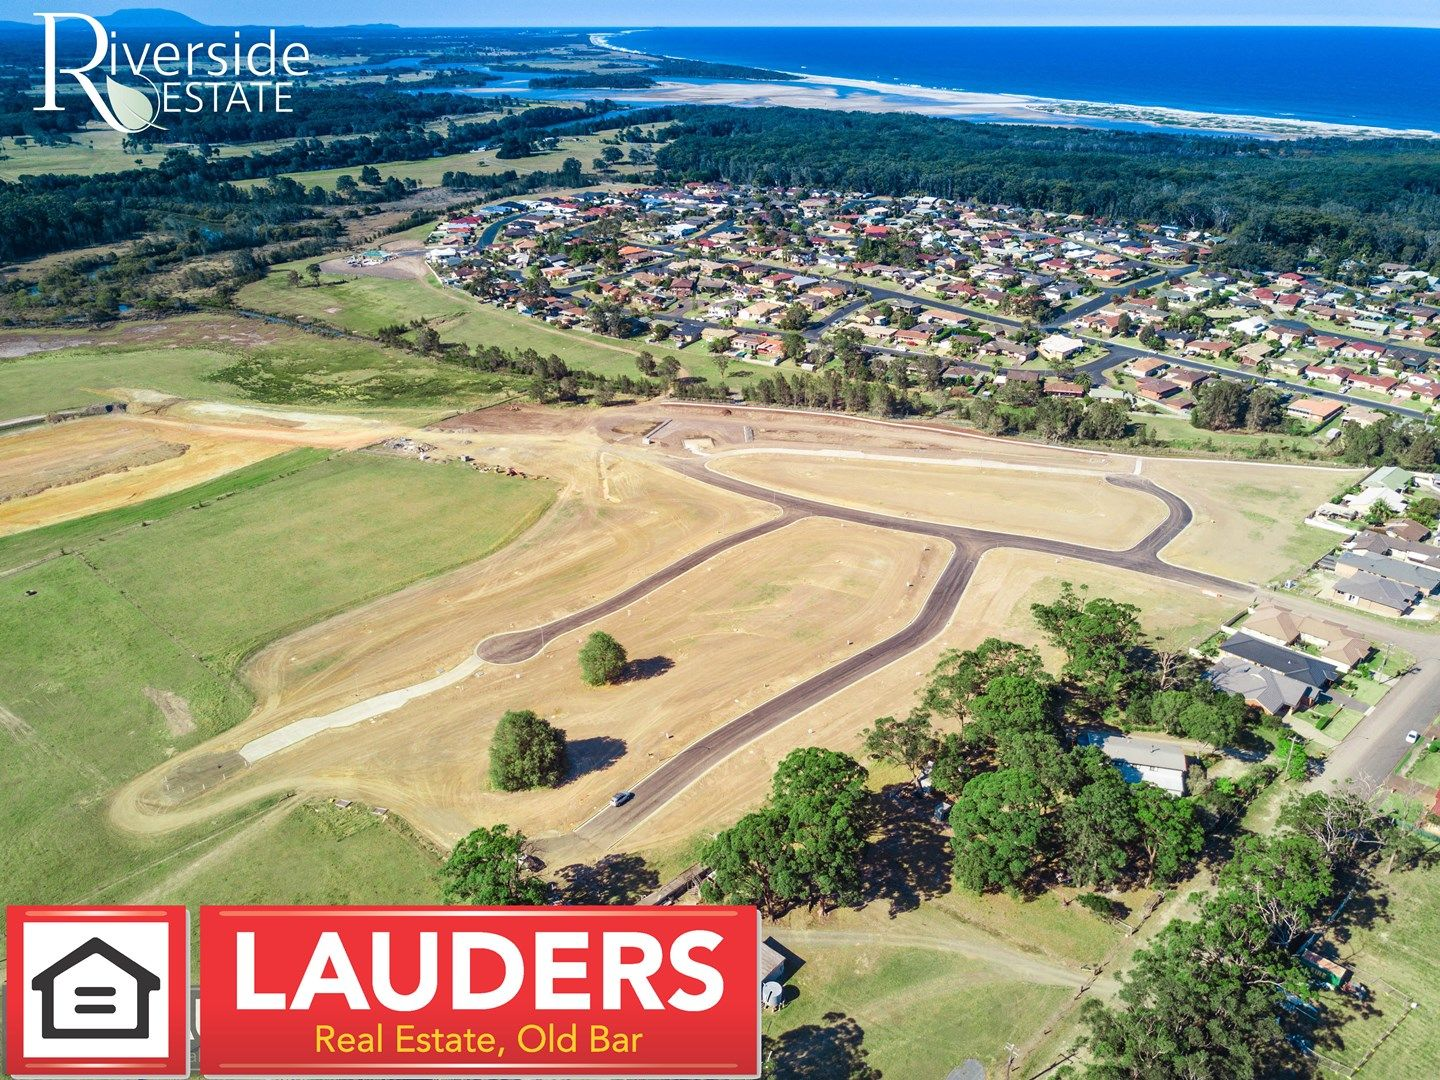 Lot 46 Viewmont Way, Riverside Estate, Old Bar NSW 2430, Image 0